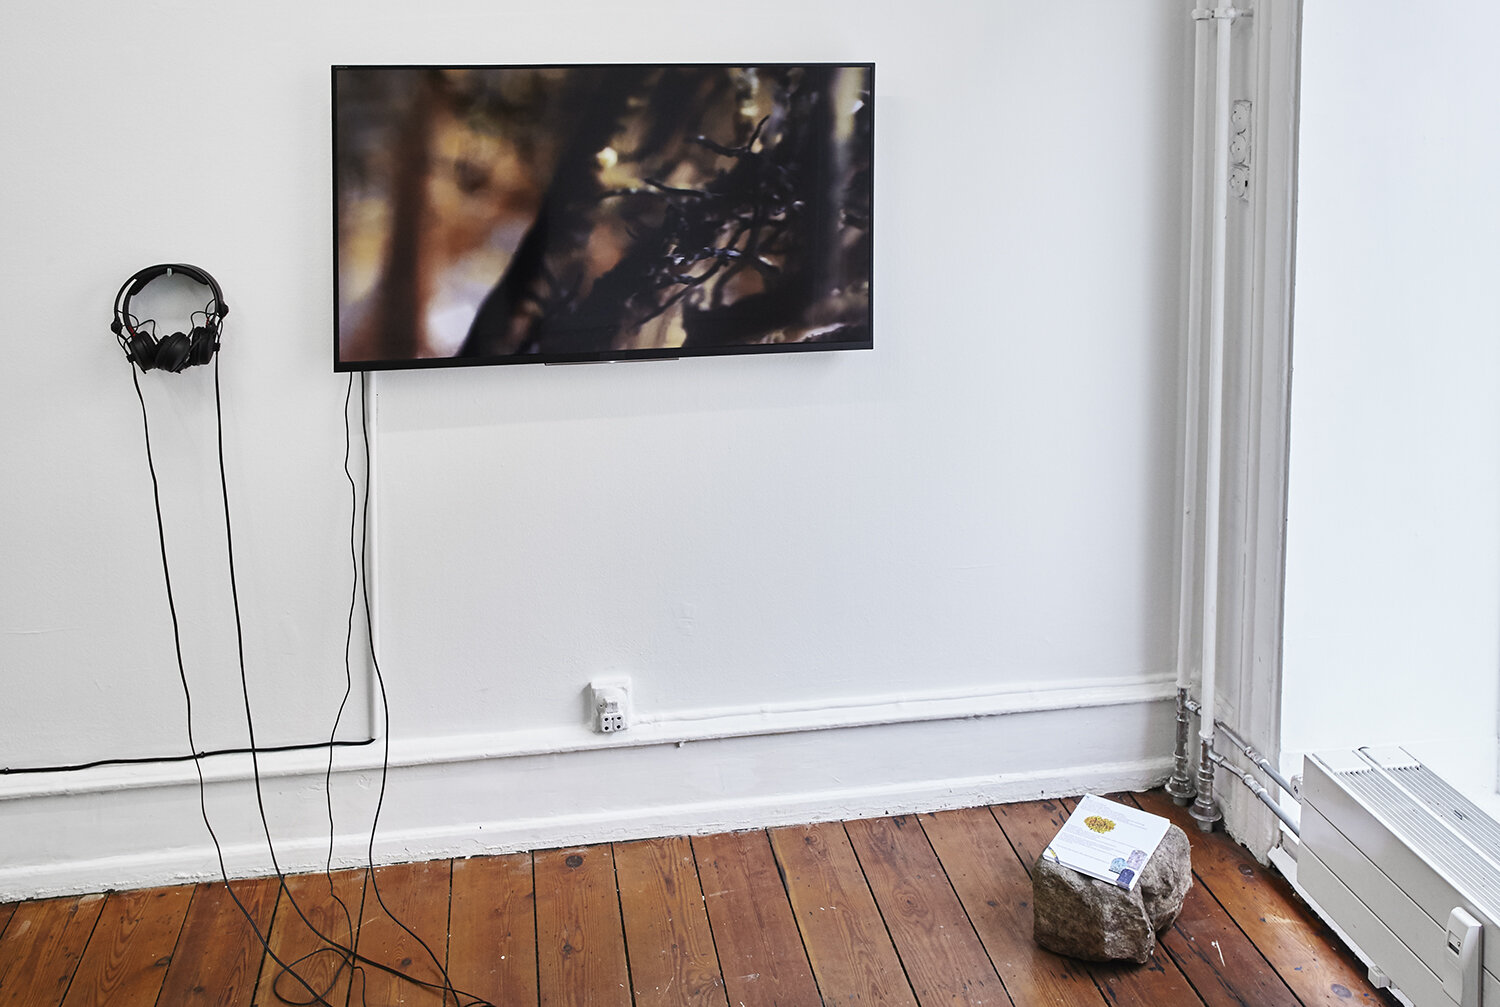 Arendse Krabbe in collaboration with lichen, Among sister Venus and earthlings; Bacteria, Lichen and me. One Channel HD Video, Looping, Duration 10:37min, 2017. Sound design in collaboration with Martin Gru. The work was kindly sponsored by Canon. Photo: SixtyEight Art Institute, 2019.